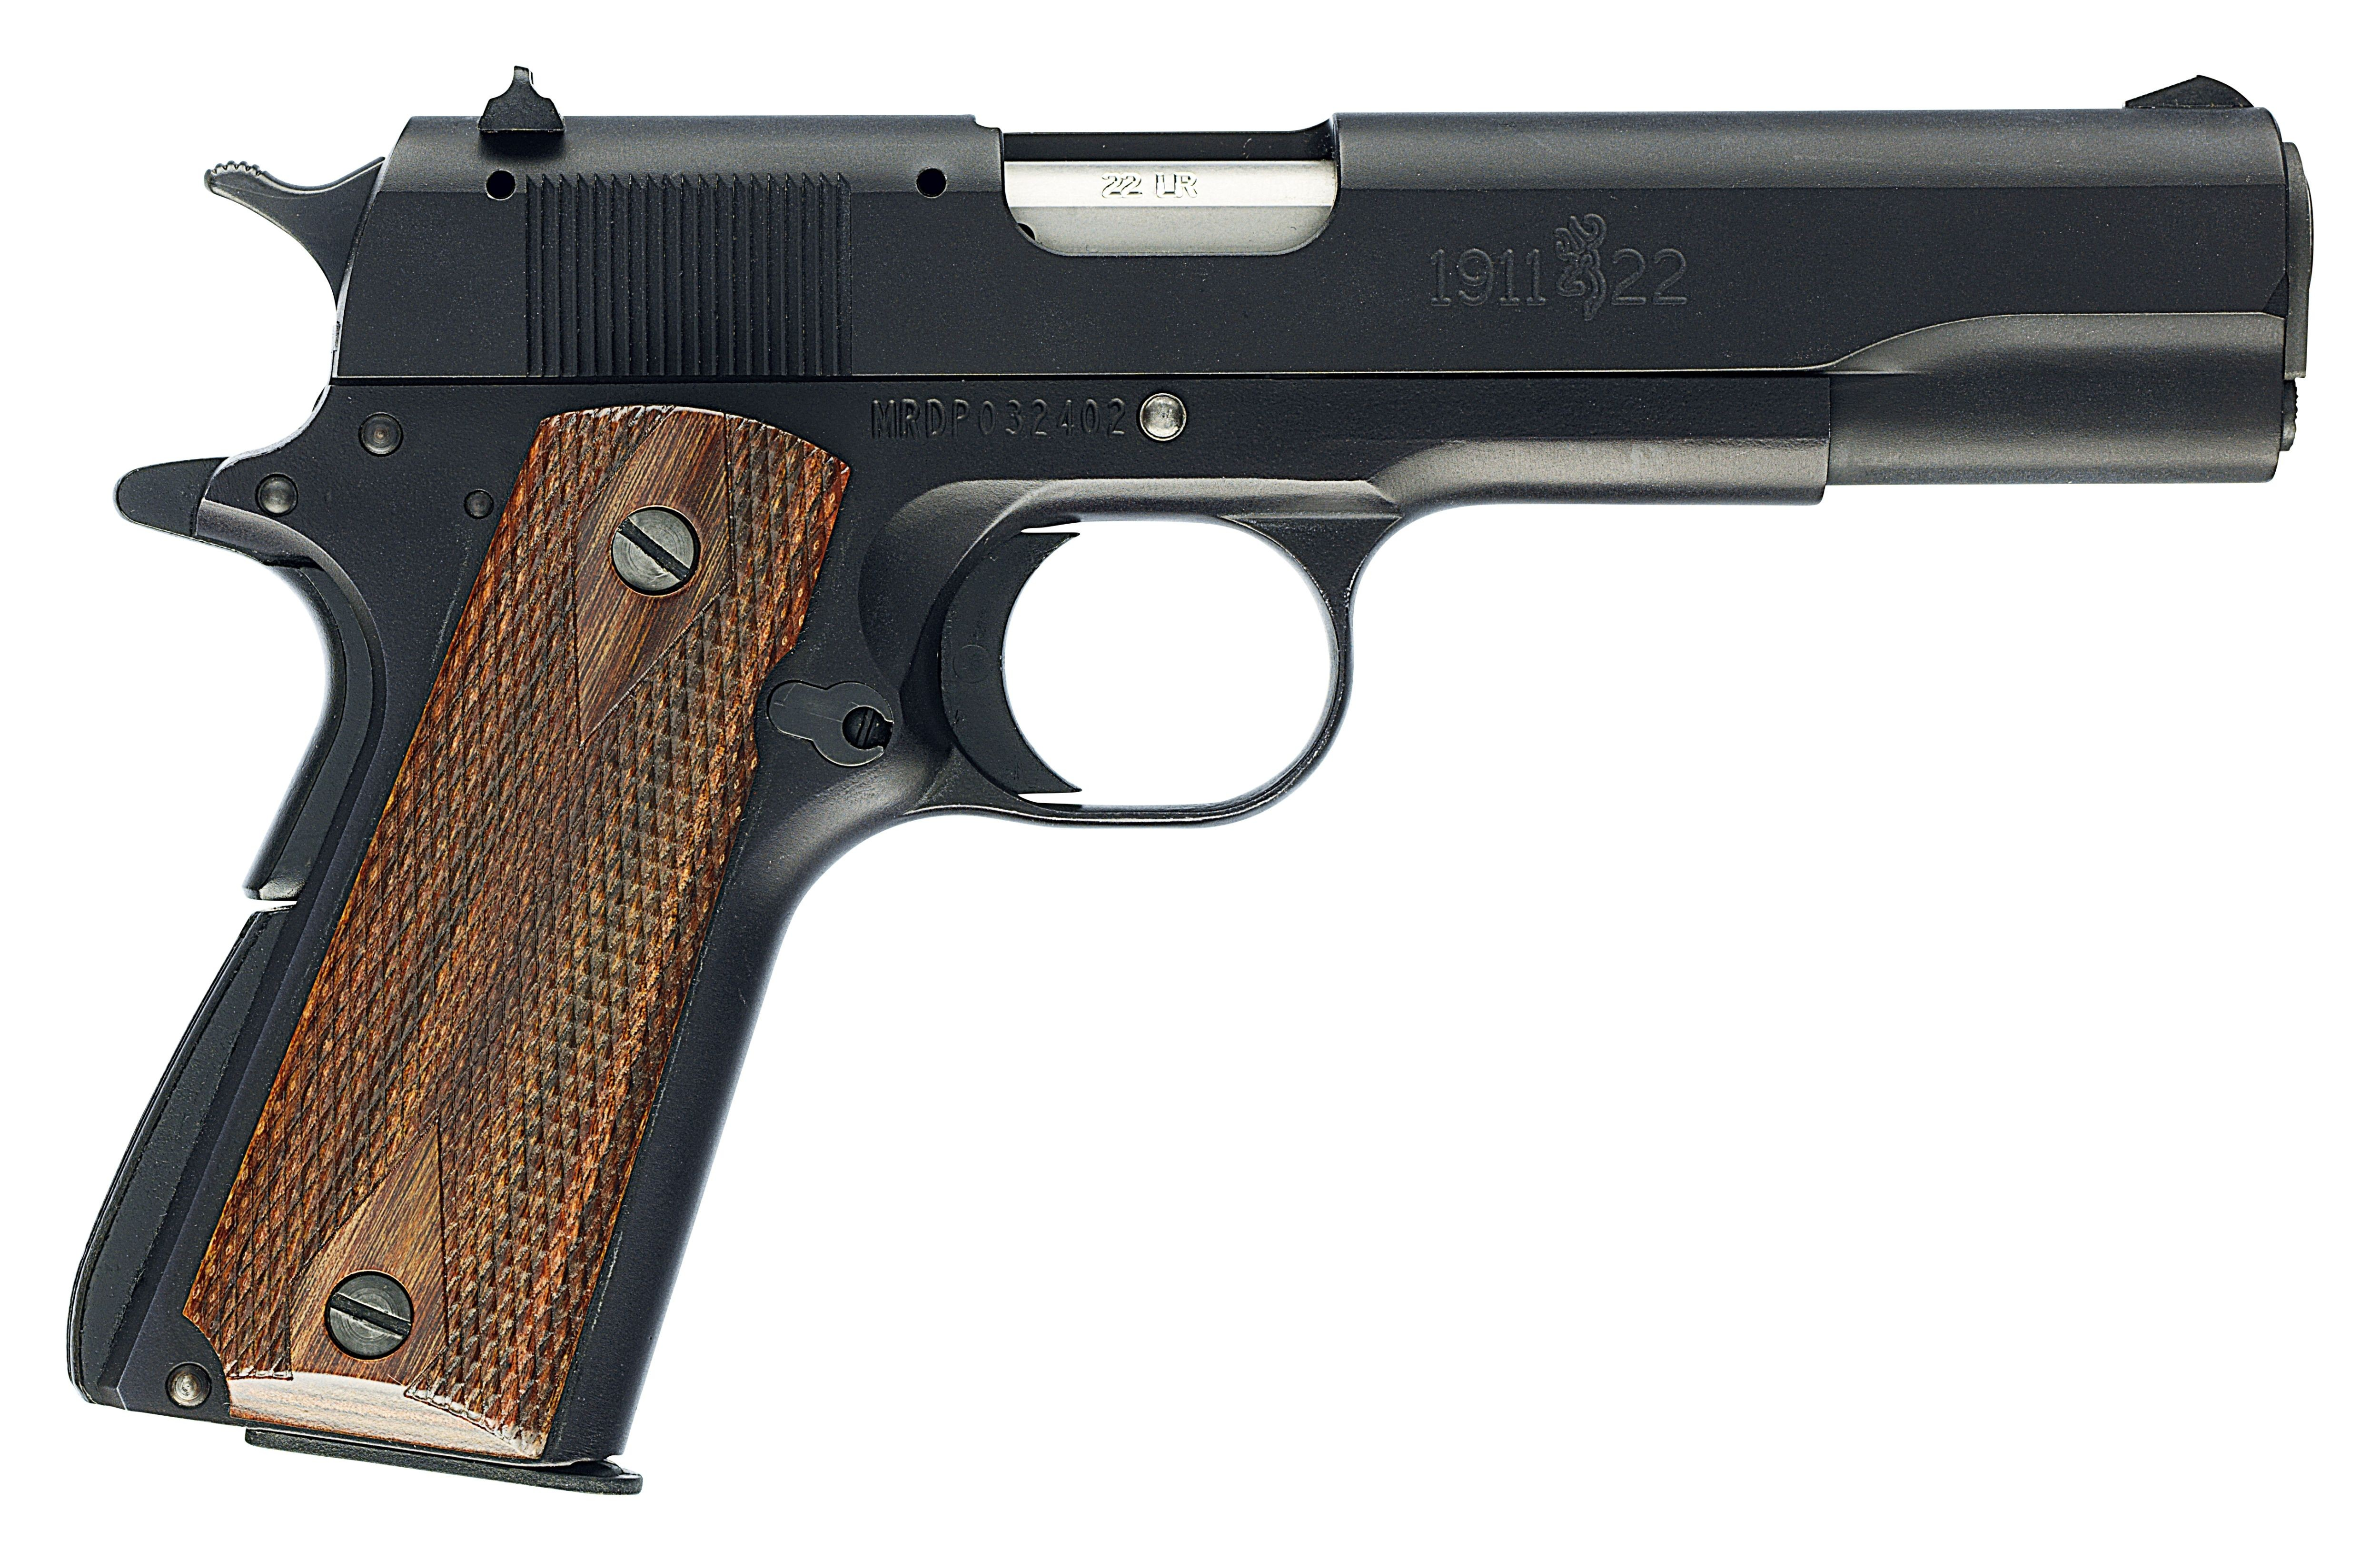 Browning 1911-22 A1 Full Size